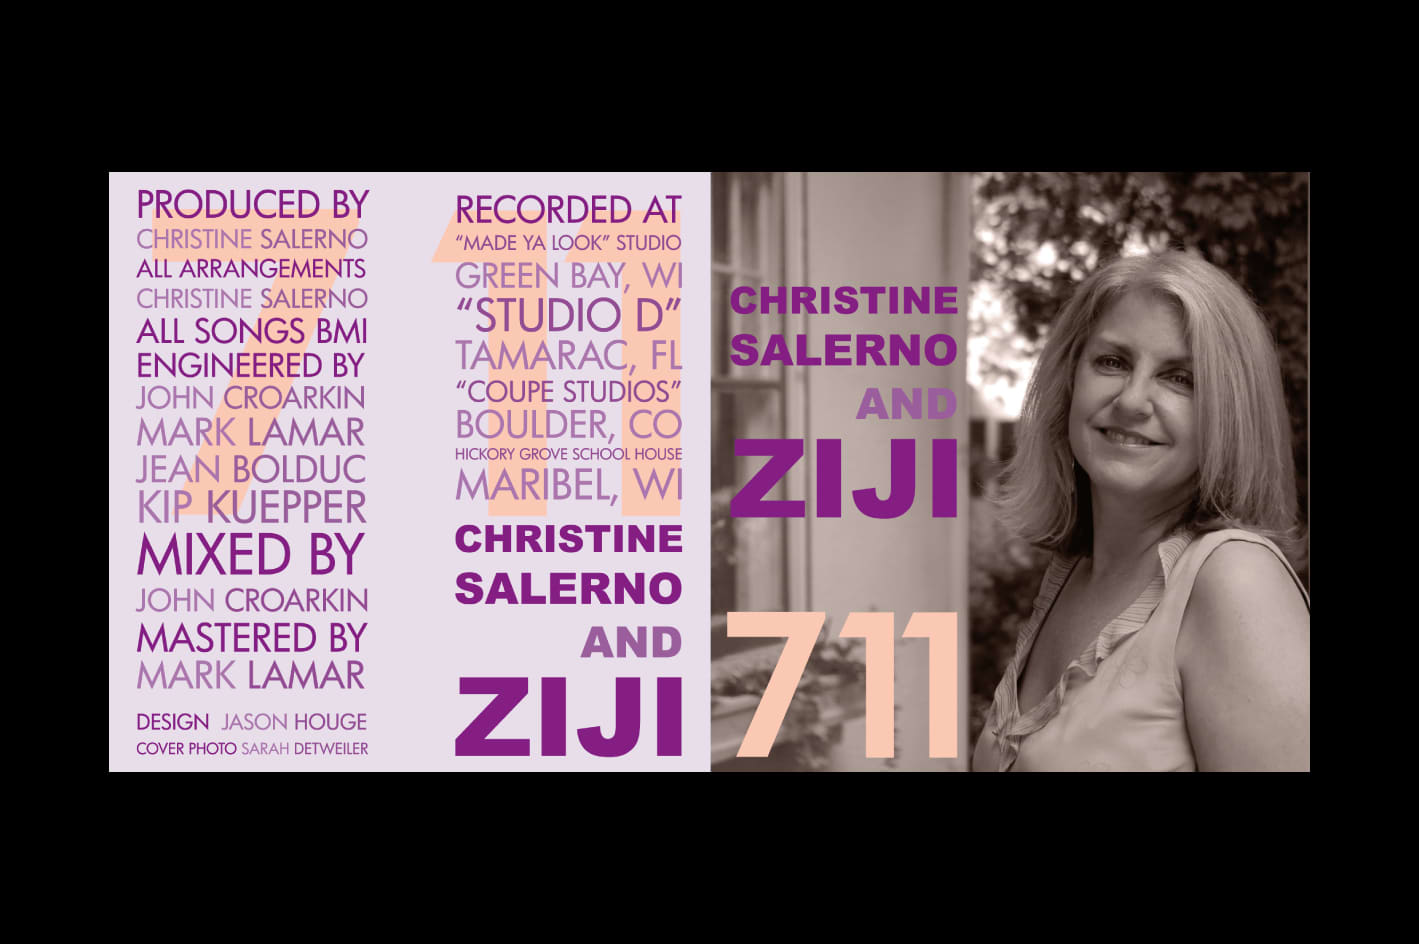 Christine Salerno and ZIJI Album